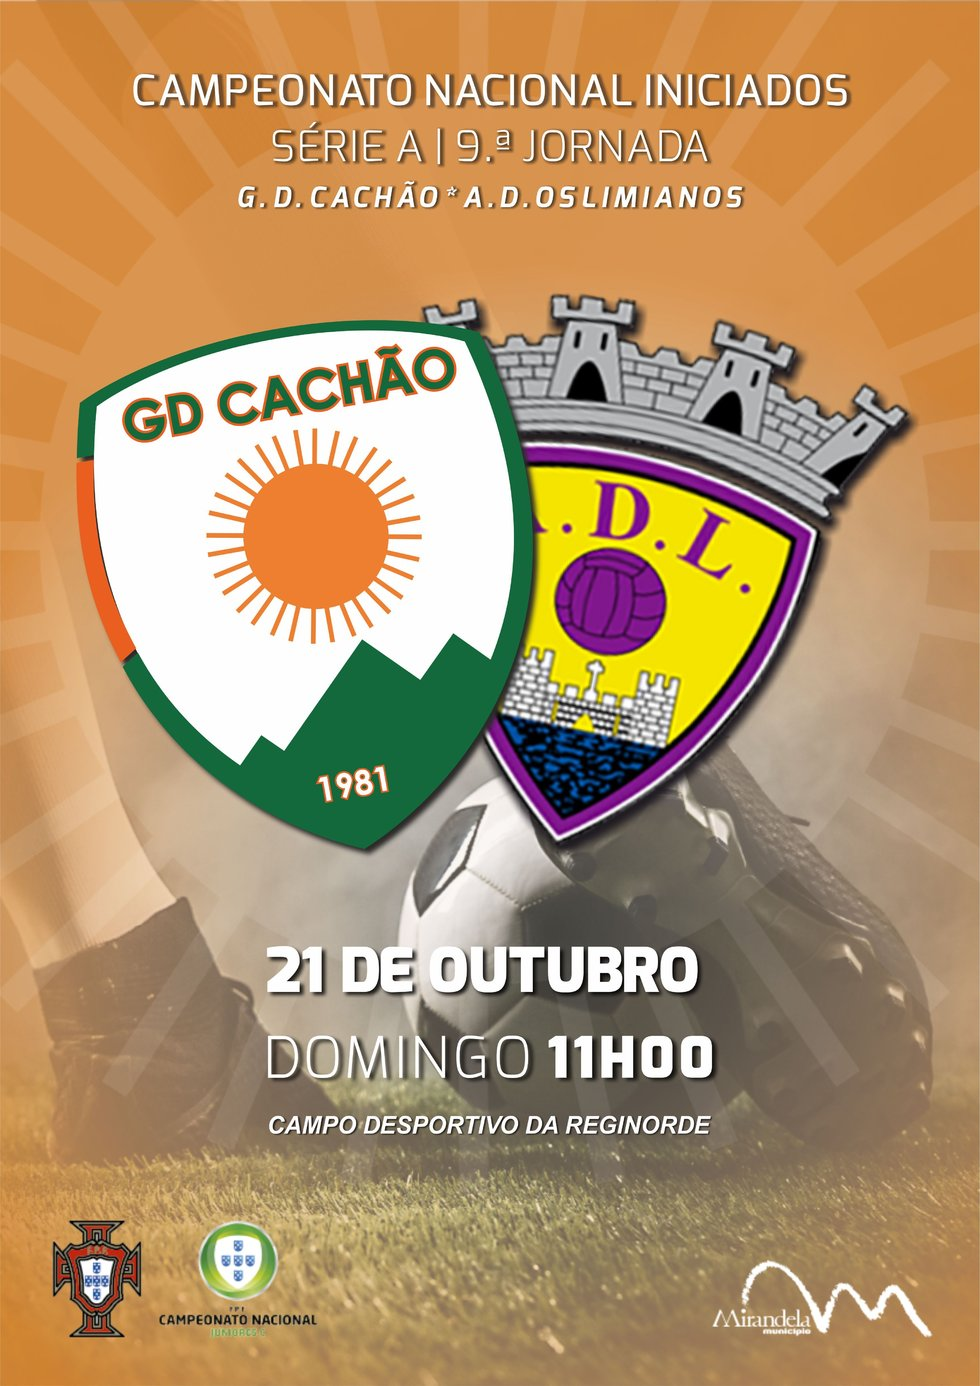 Fut inic gdcachao ad os limianos 1 980 2500